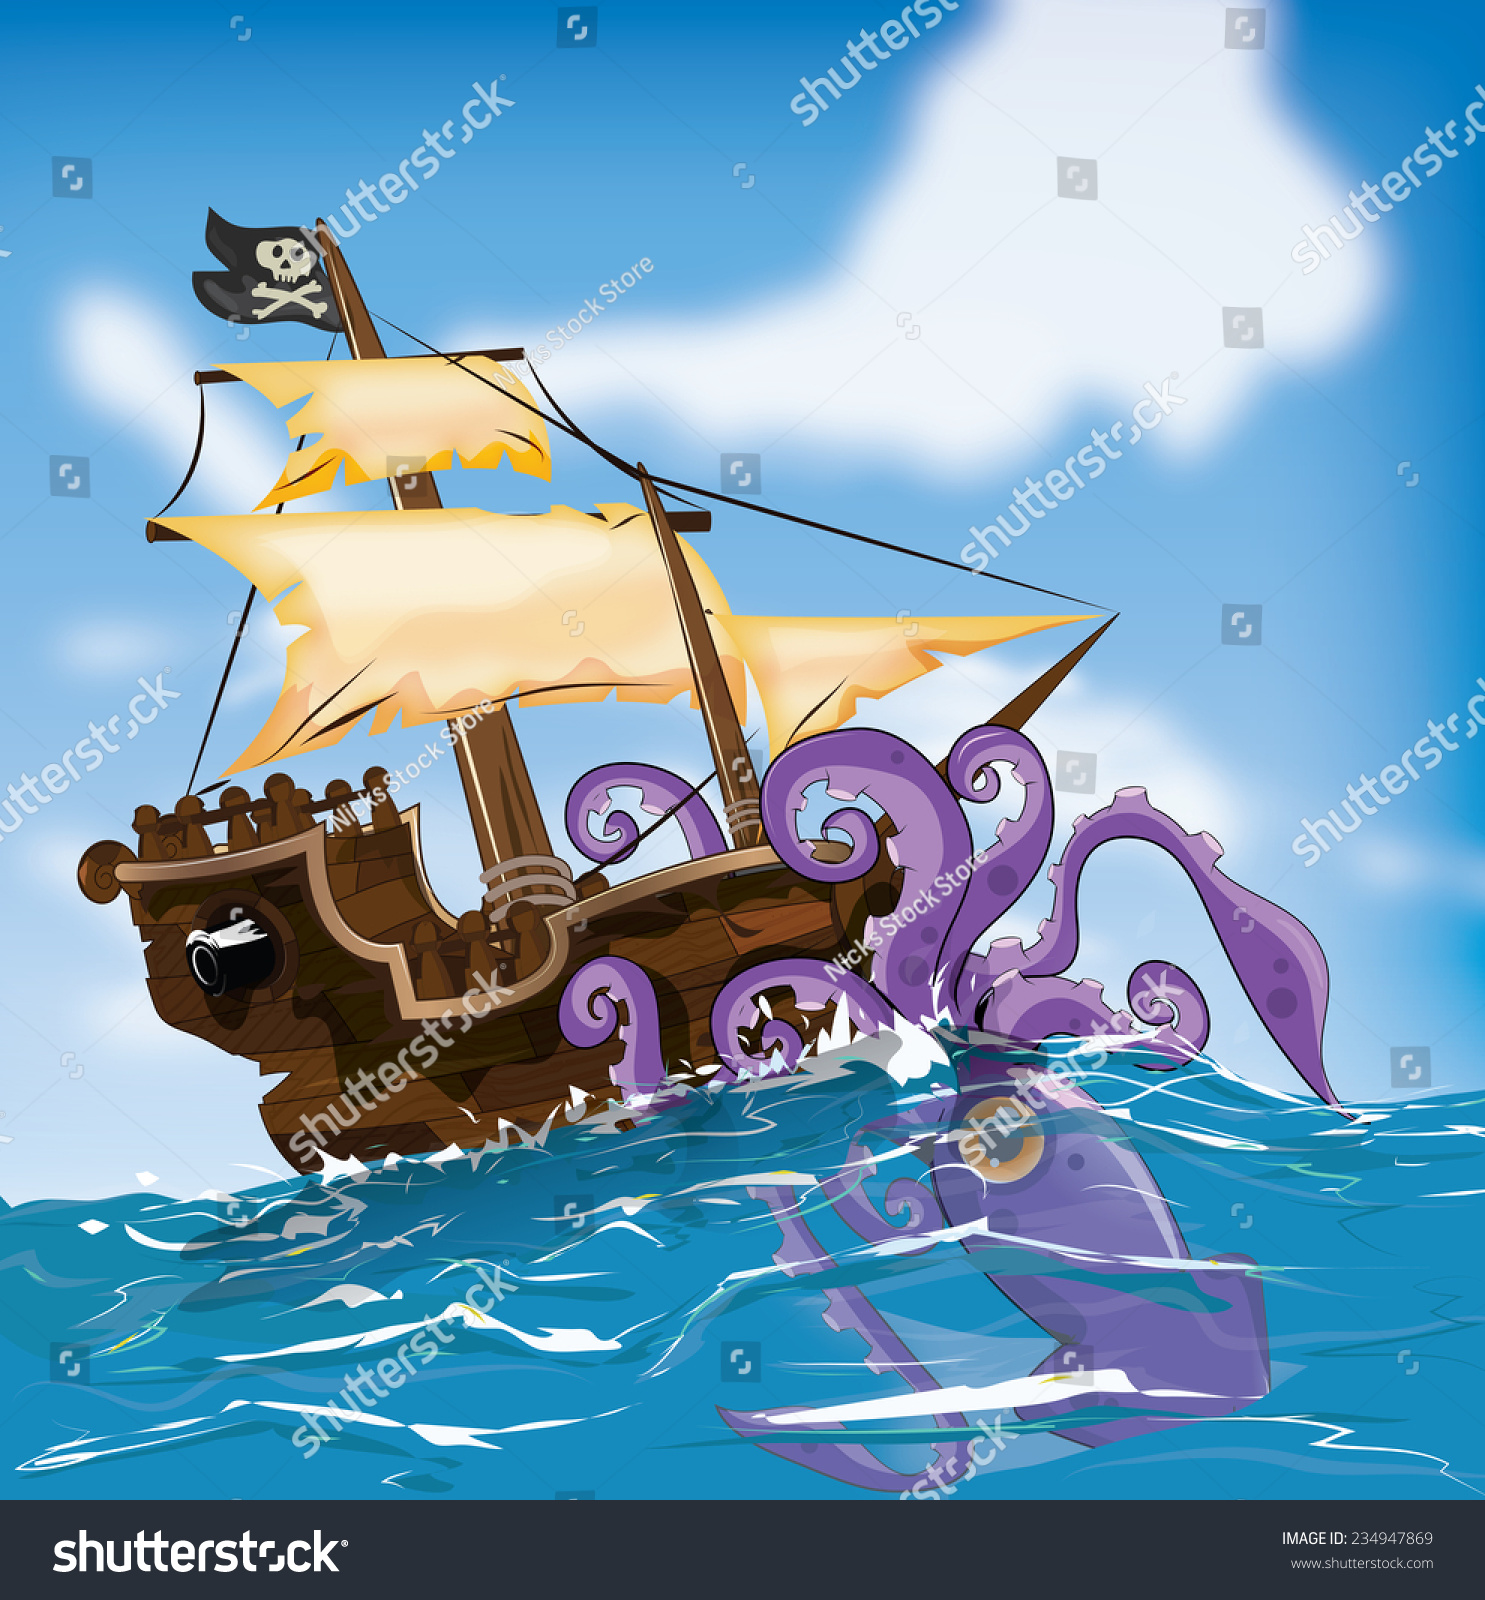 Wooden Pirate Ship Attacked By Giant Squid At Sea